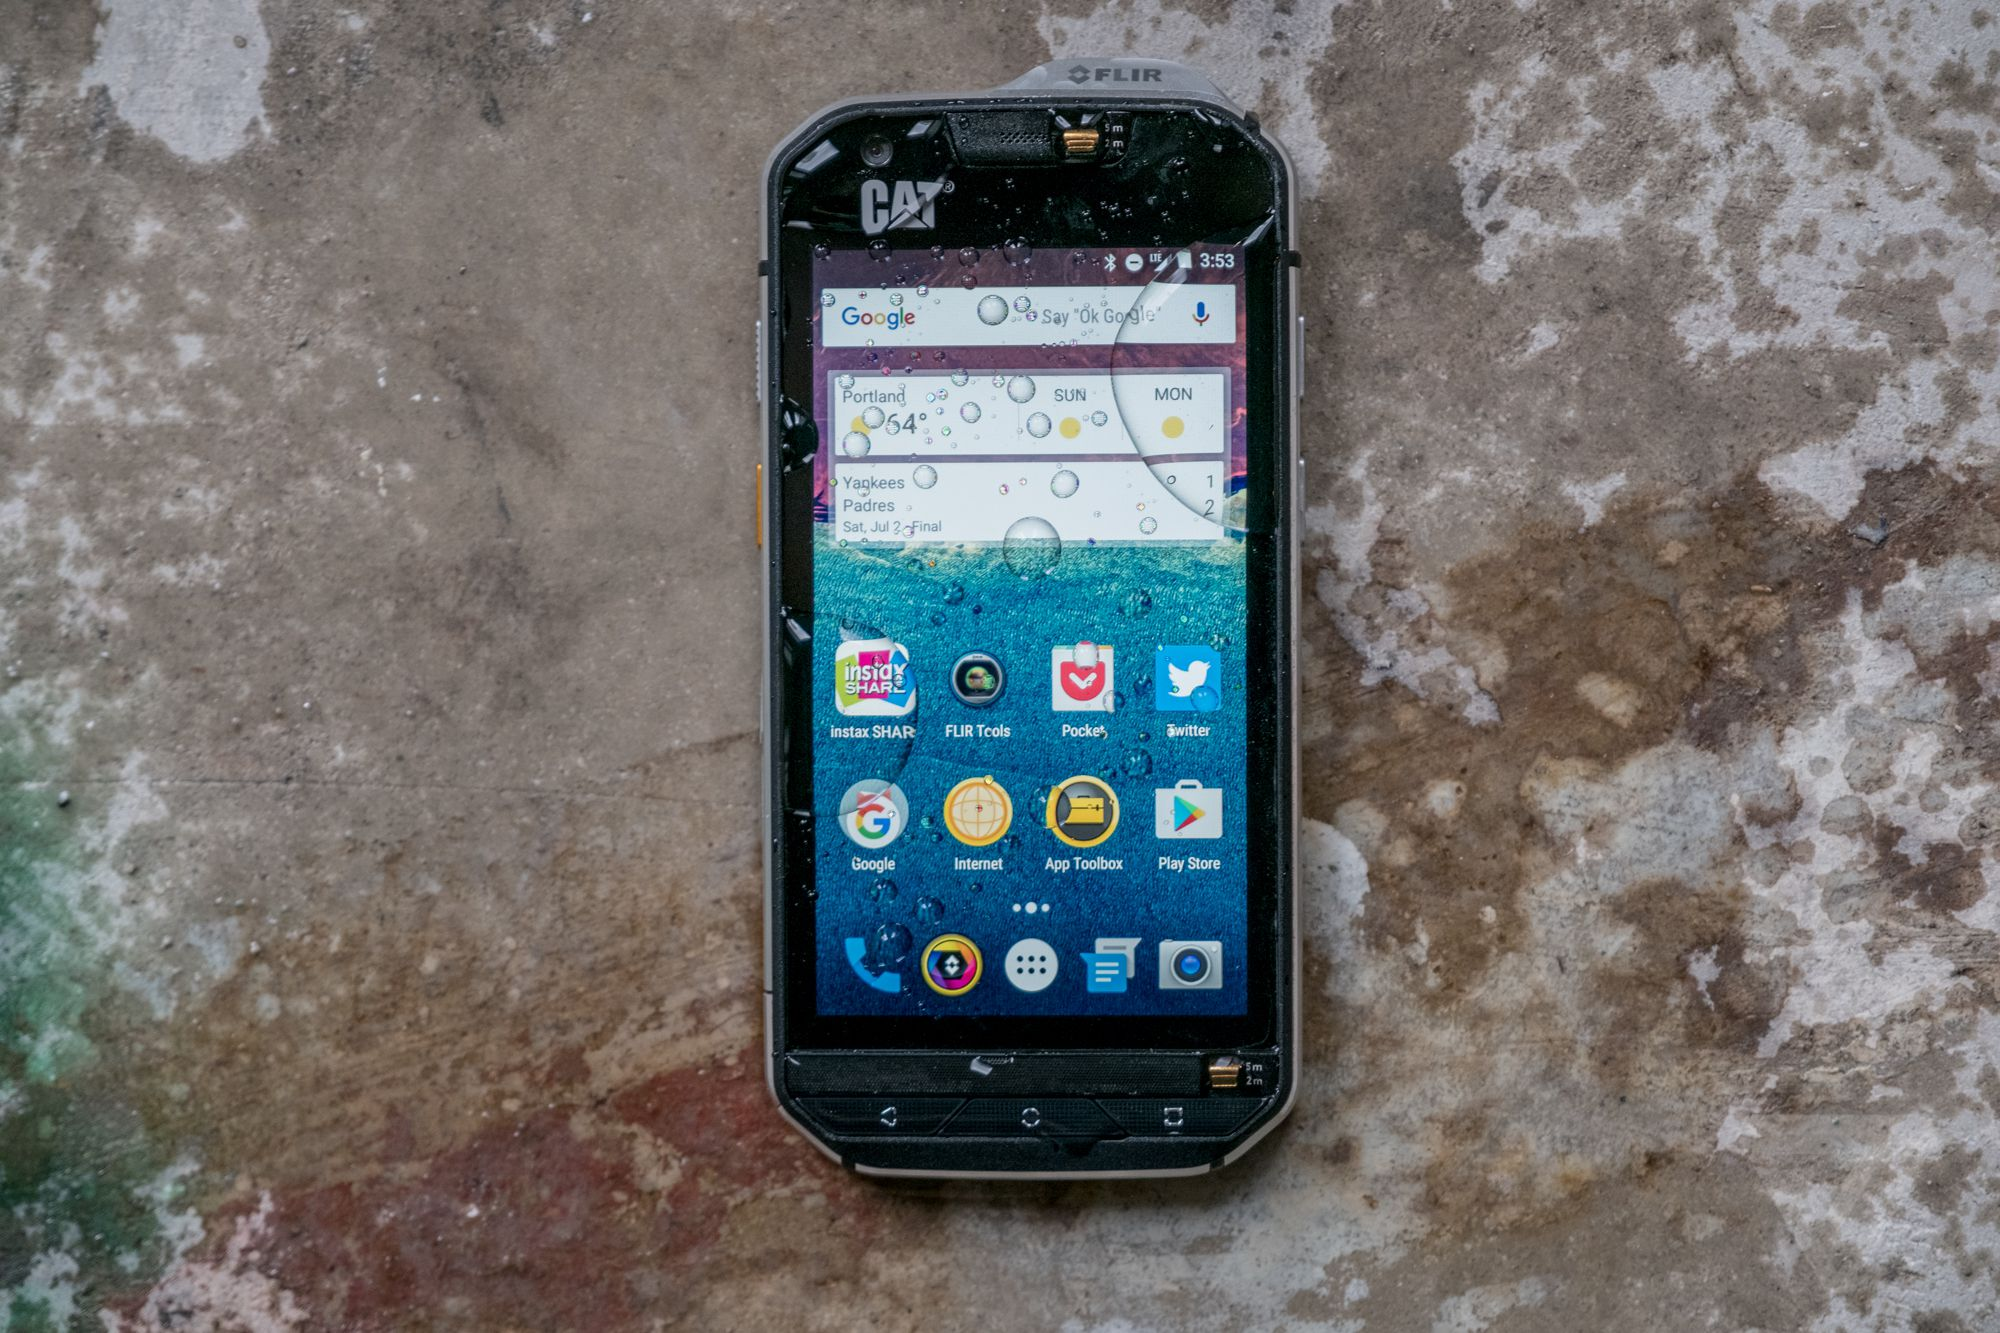 cat s60 review a rugged phone that can see in the dark the verge. Black Bedroom Furniture Sets. Home Design Ideas